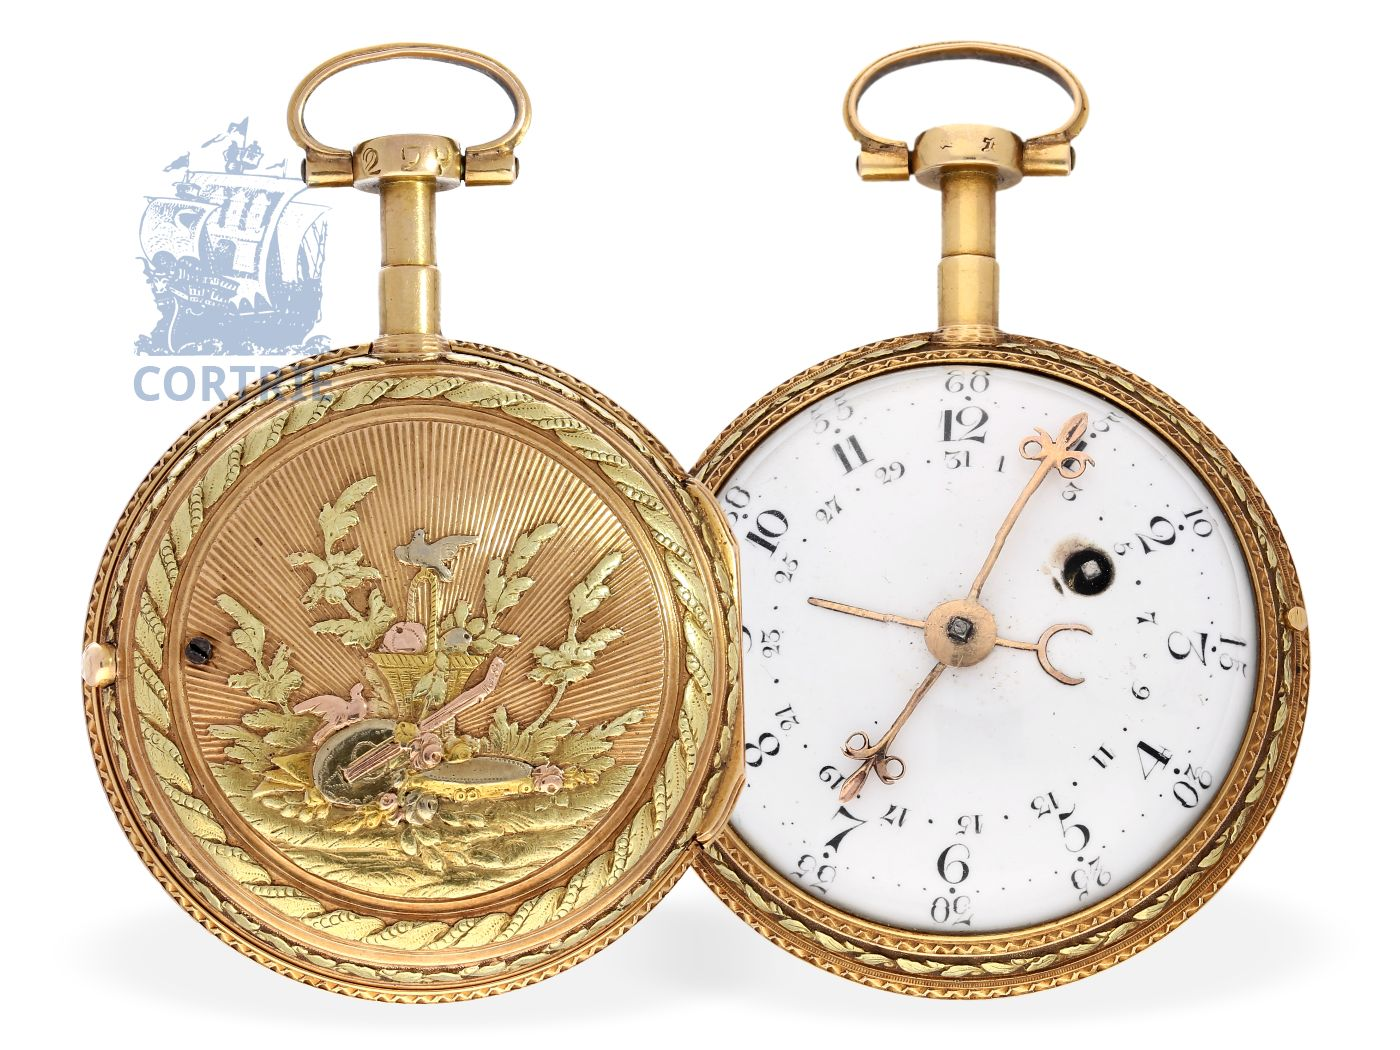 Pocket watch: fine 4-colored 18 K gold verge watch with calendar, Pierre Viala Geneve ca. 1780-